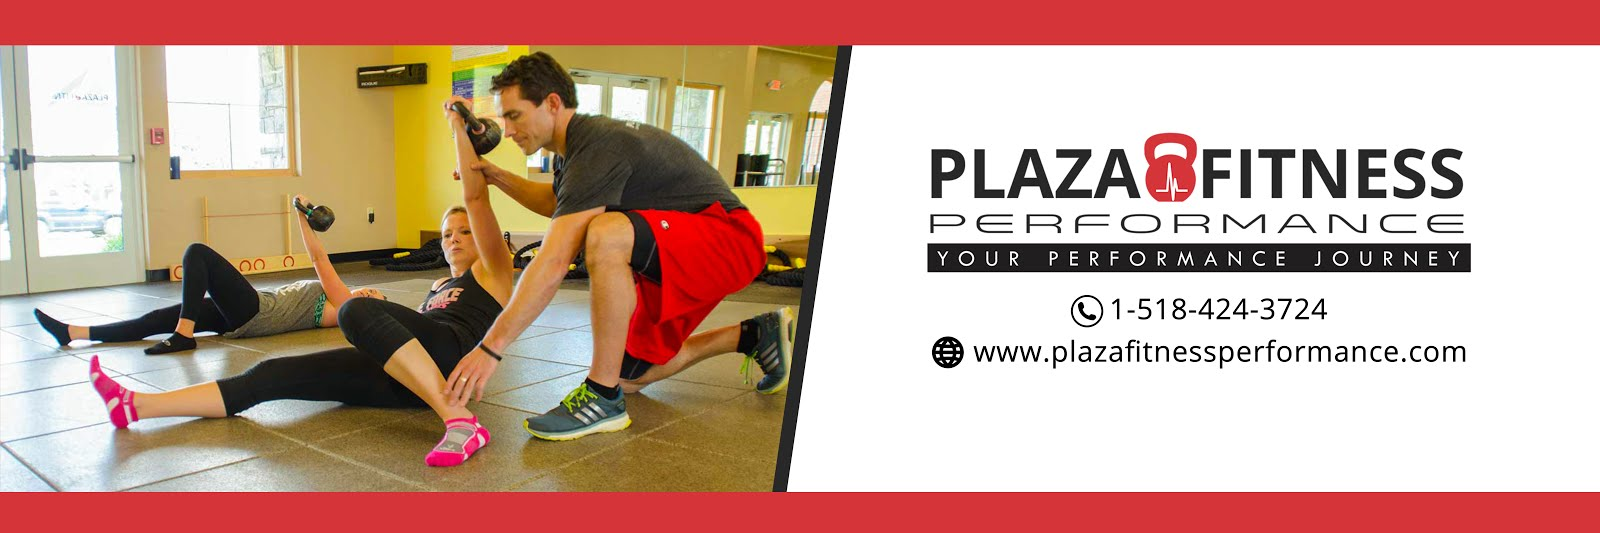 Plaza Fitness Performance